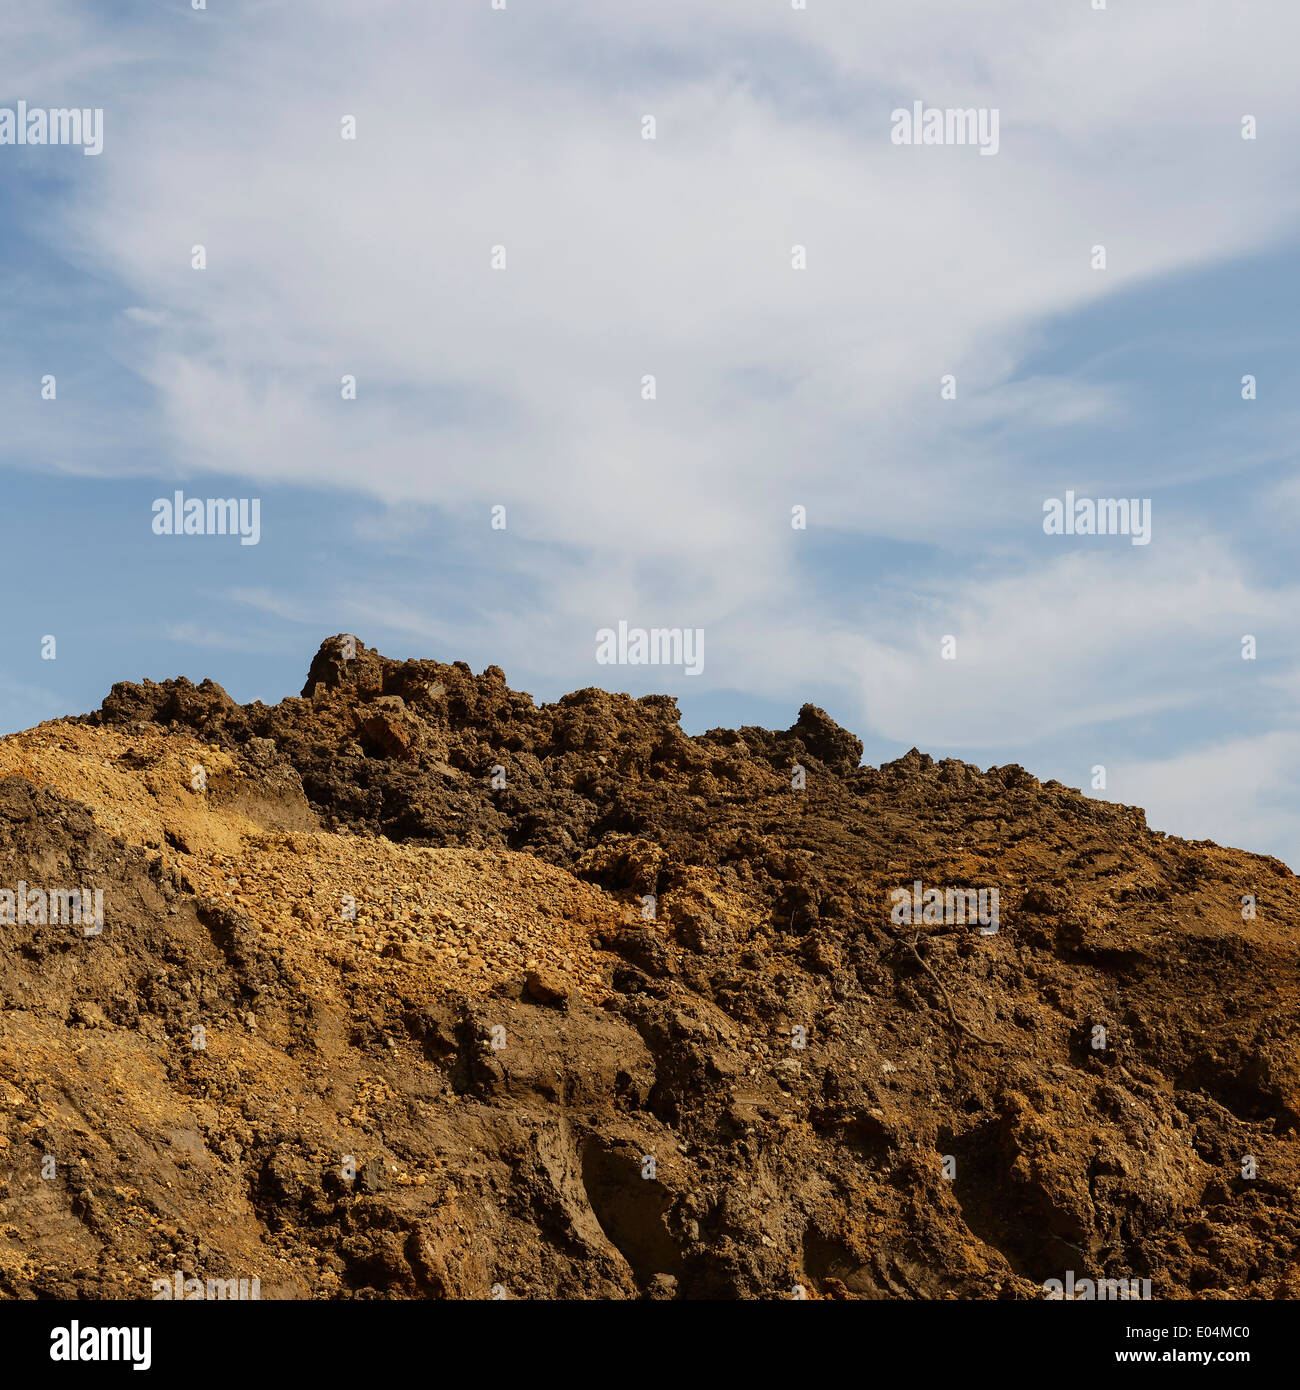 Pile of earth against a blue sky on a UK construction site - Stock Image